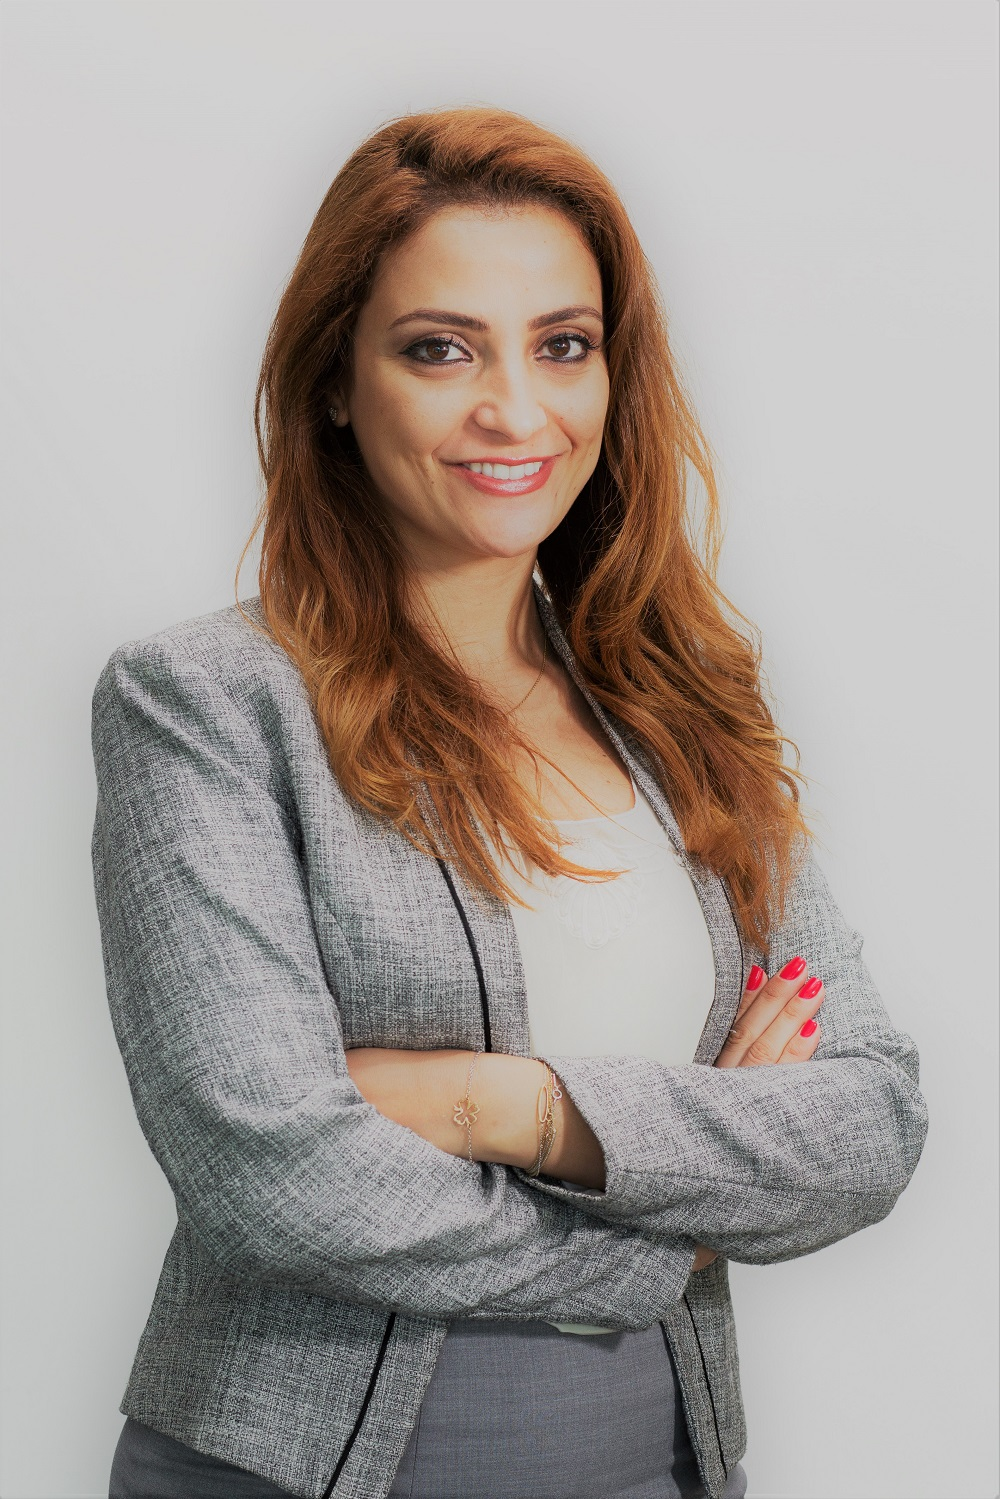 Ruba Saadeh HEC Paris Executive MBA candidate and Schneider Electronic employee